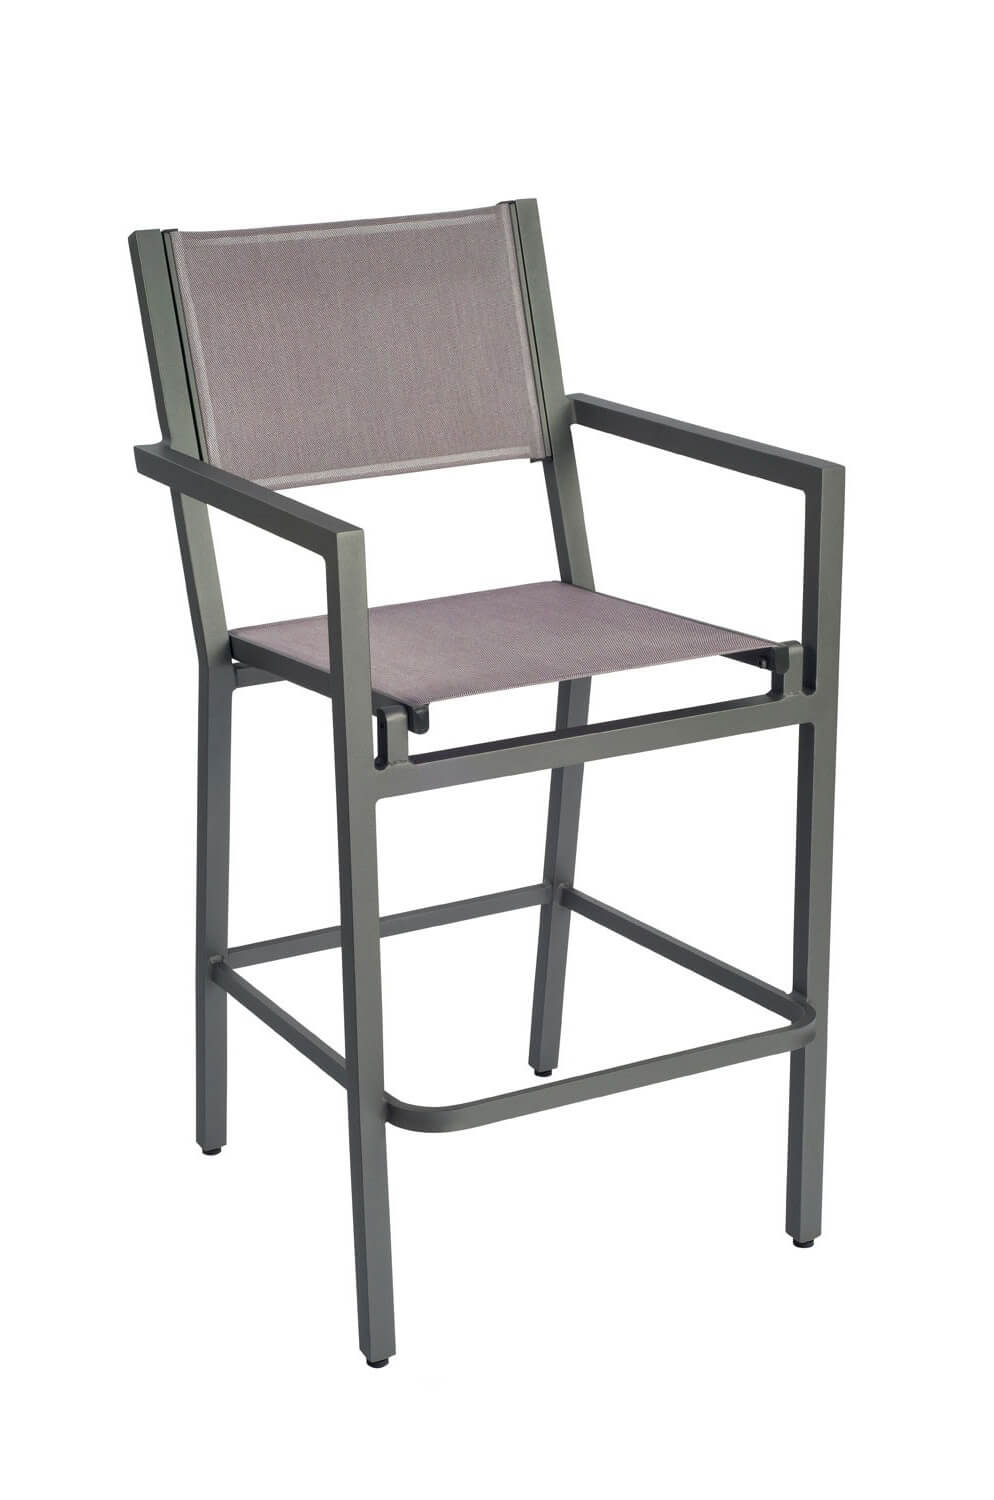 Palm Coast Outdoor Sling Stool with Arms